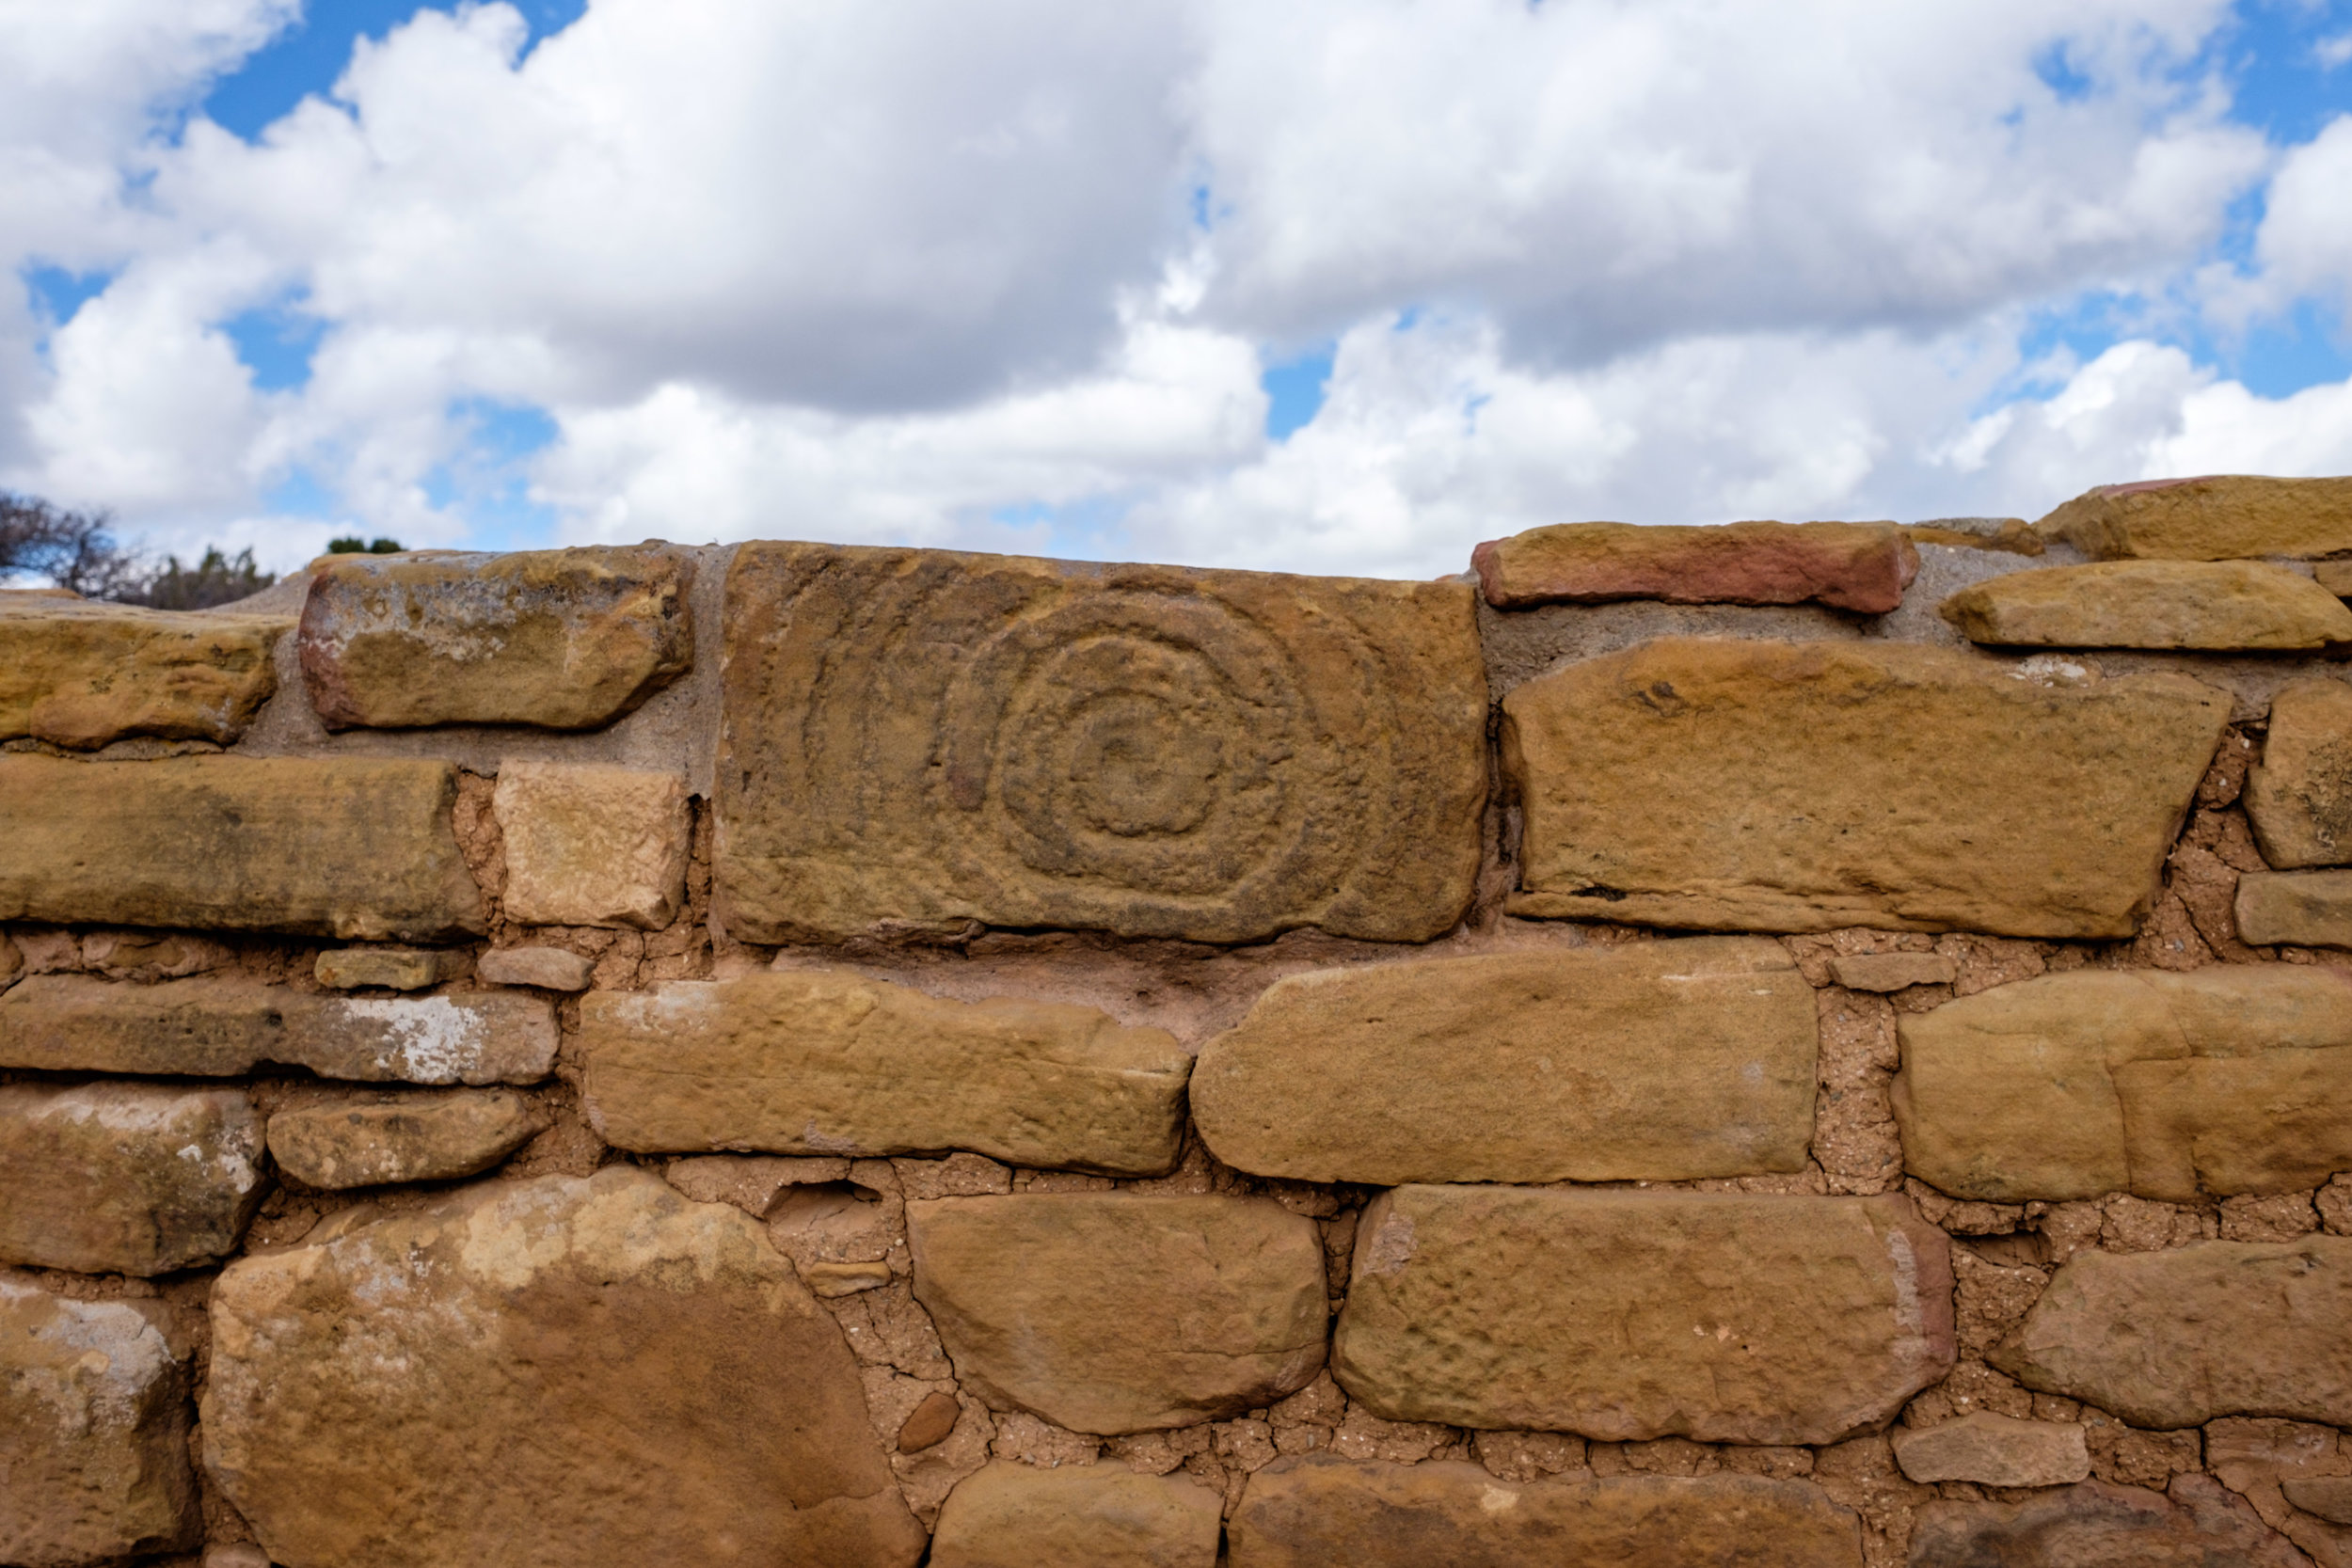 Detail of a brick with an ancestral Peubloan design.